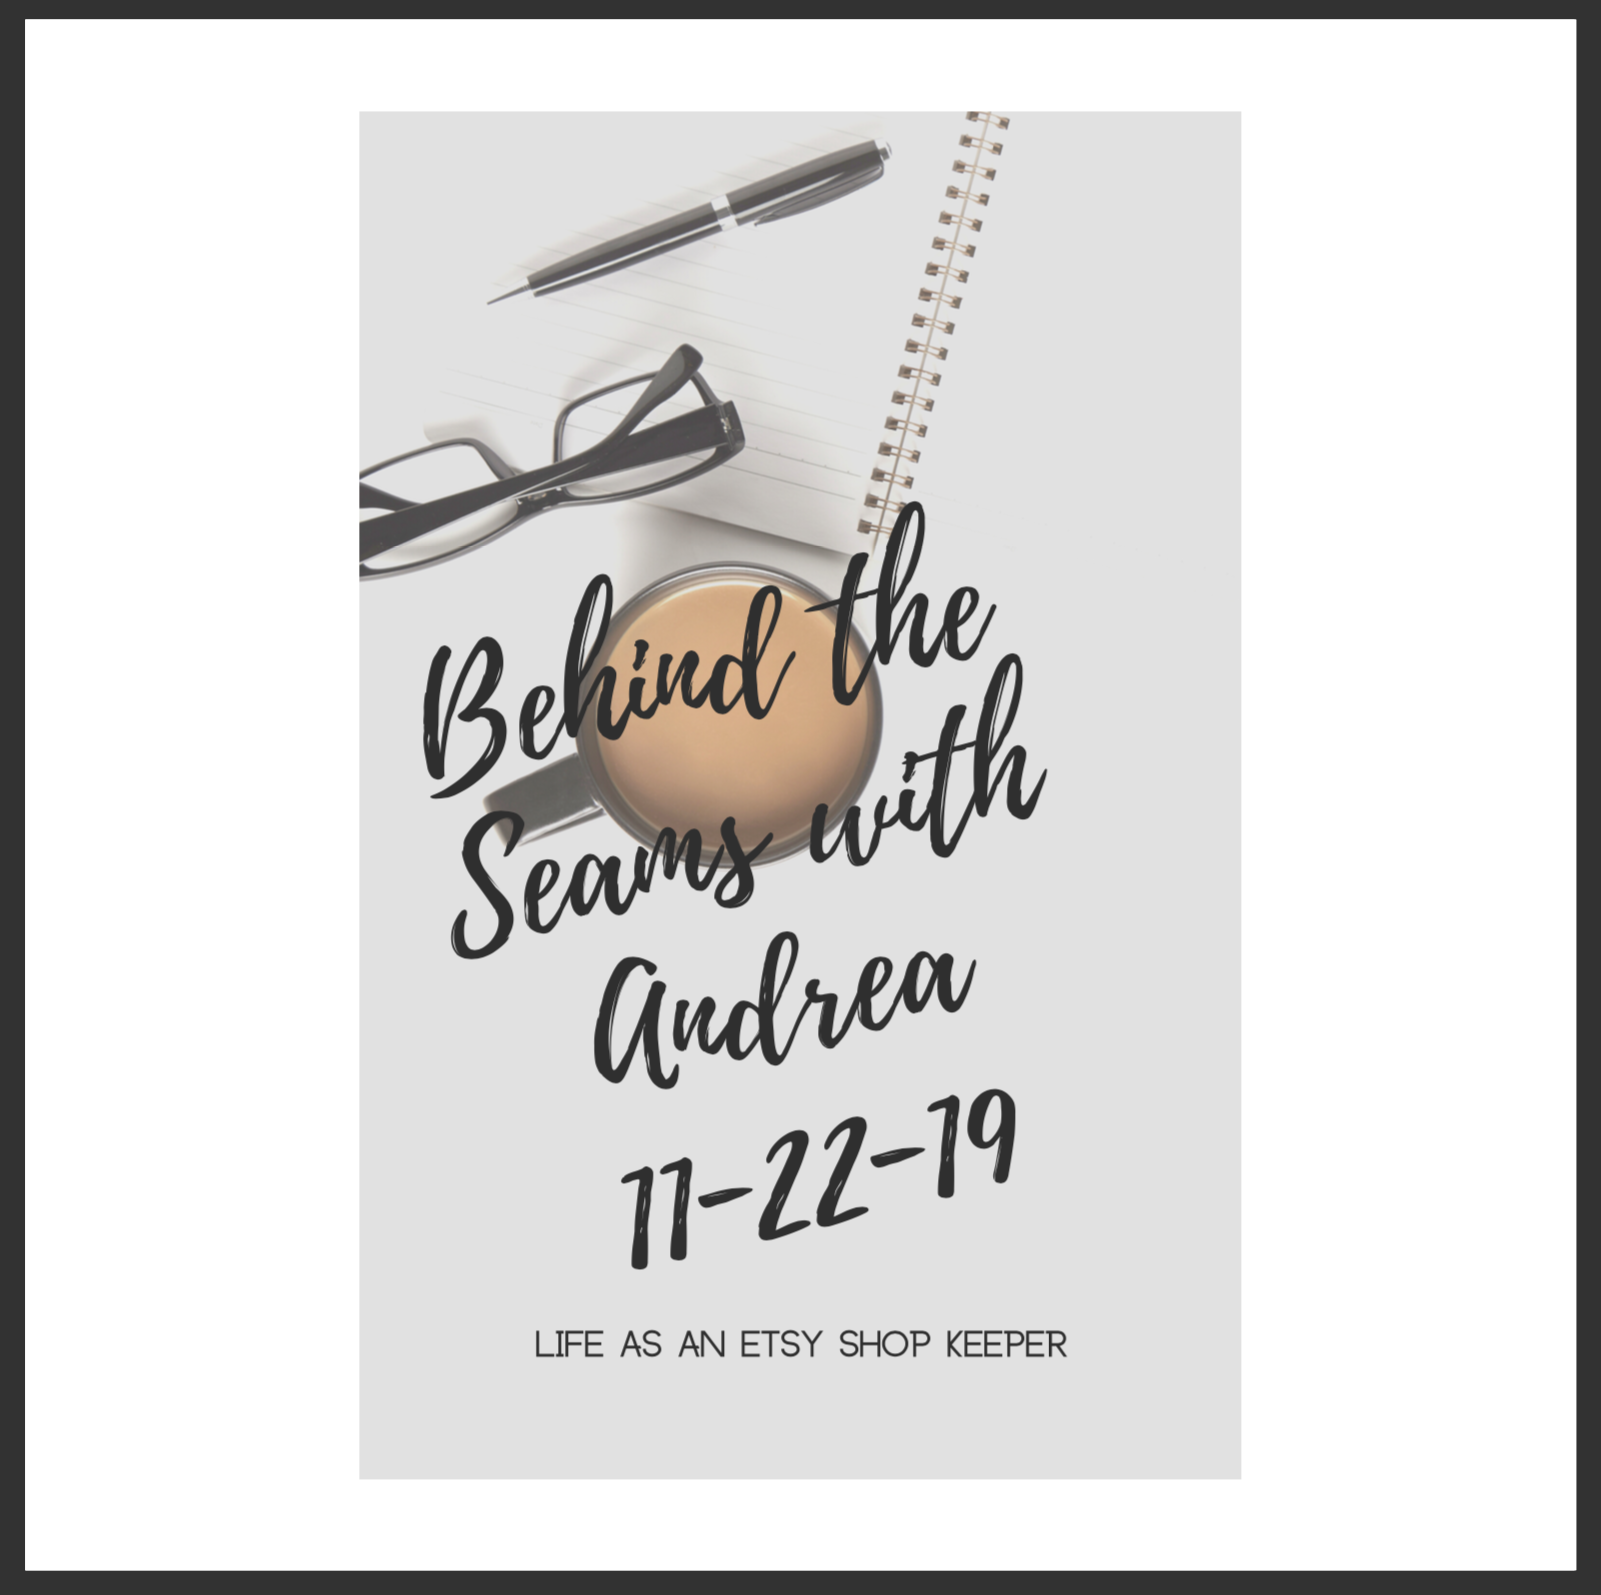 Behind the Seams with Andrea 11-22-19